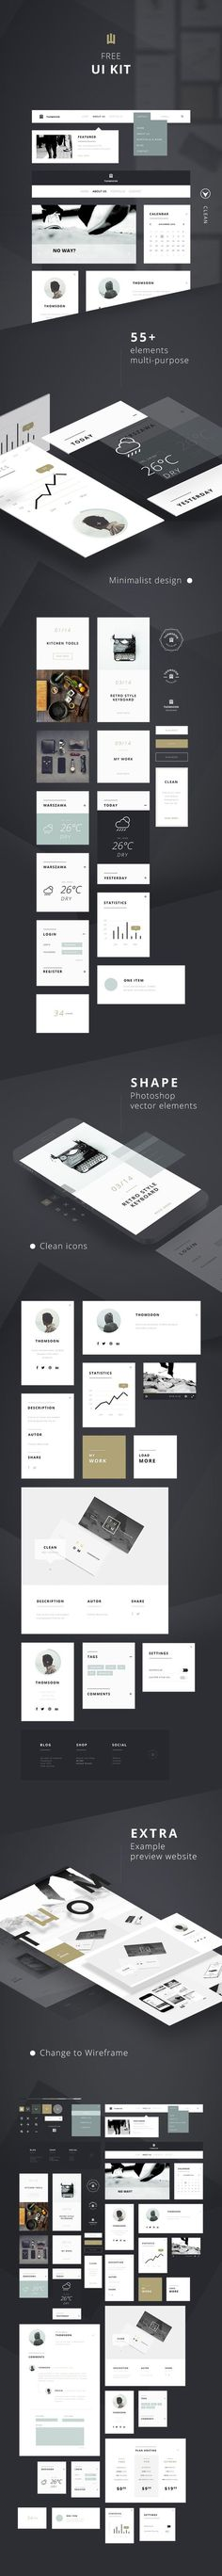 55+ Elements FREE UI KIT | Clean white [DOWNLOAD] #ux #psd #free #ui #kit